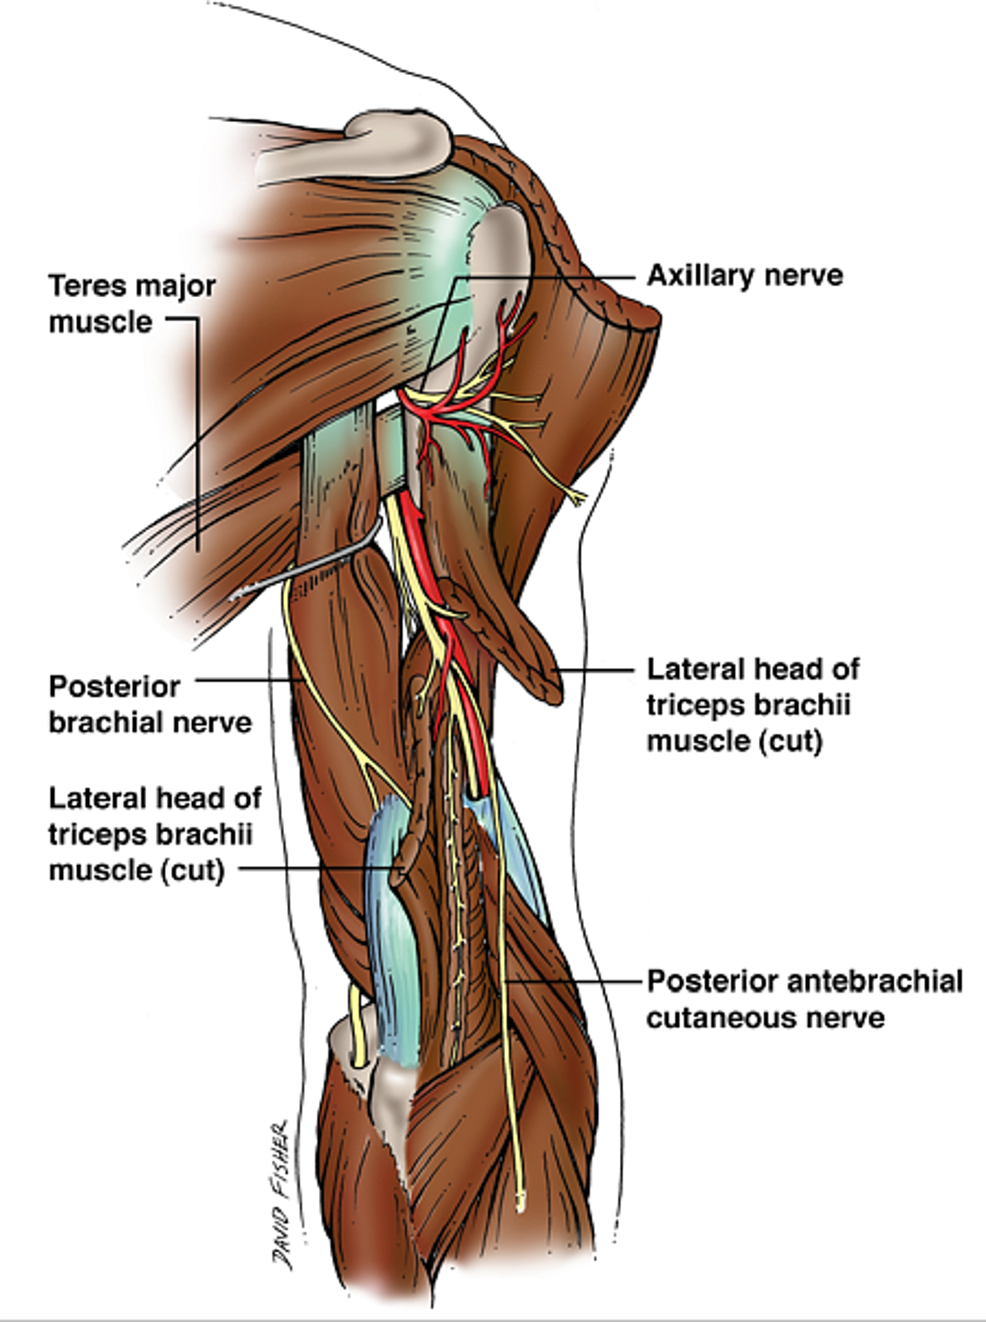 Cureus | Injury of the Radial Nerve in the Arm: A Review